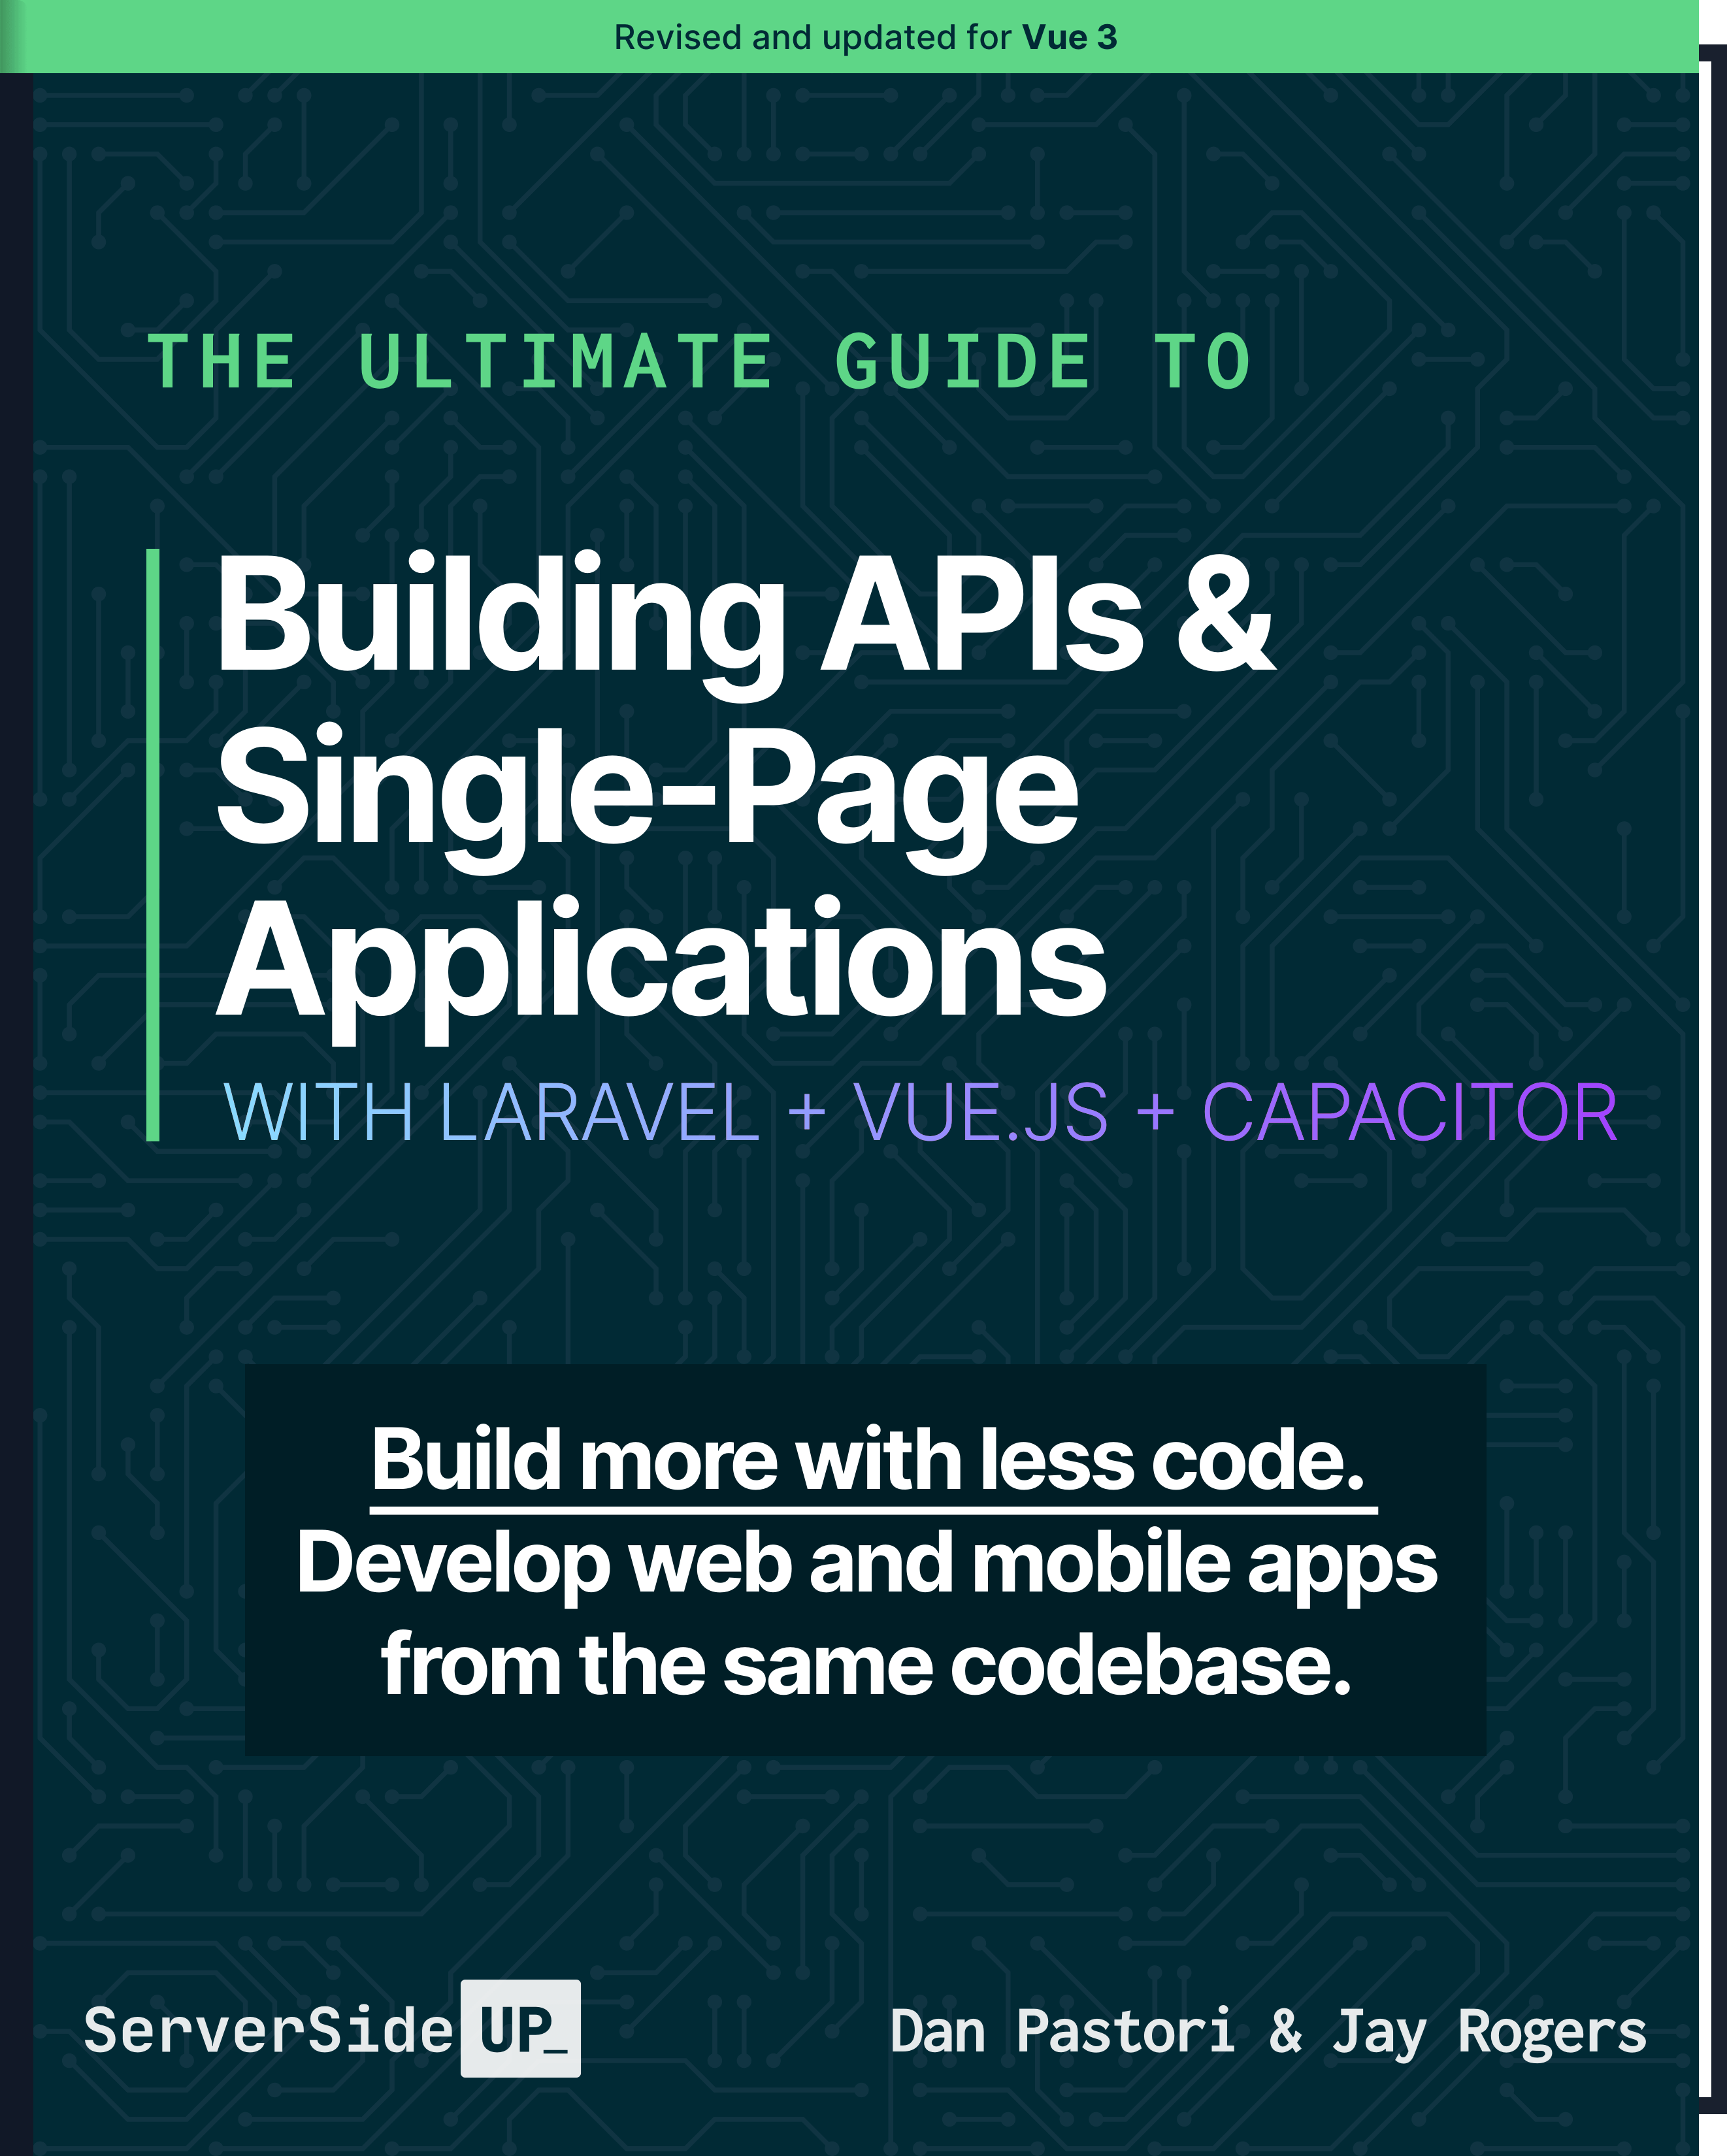 The Ultimate Guide to Building APIs & Single Page Applications with Laravel + VueJS + Capacitor